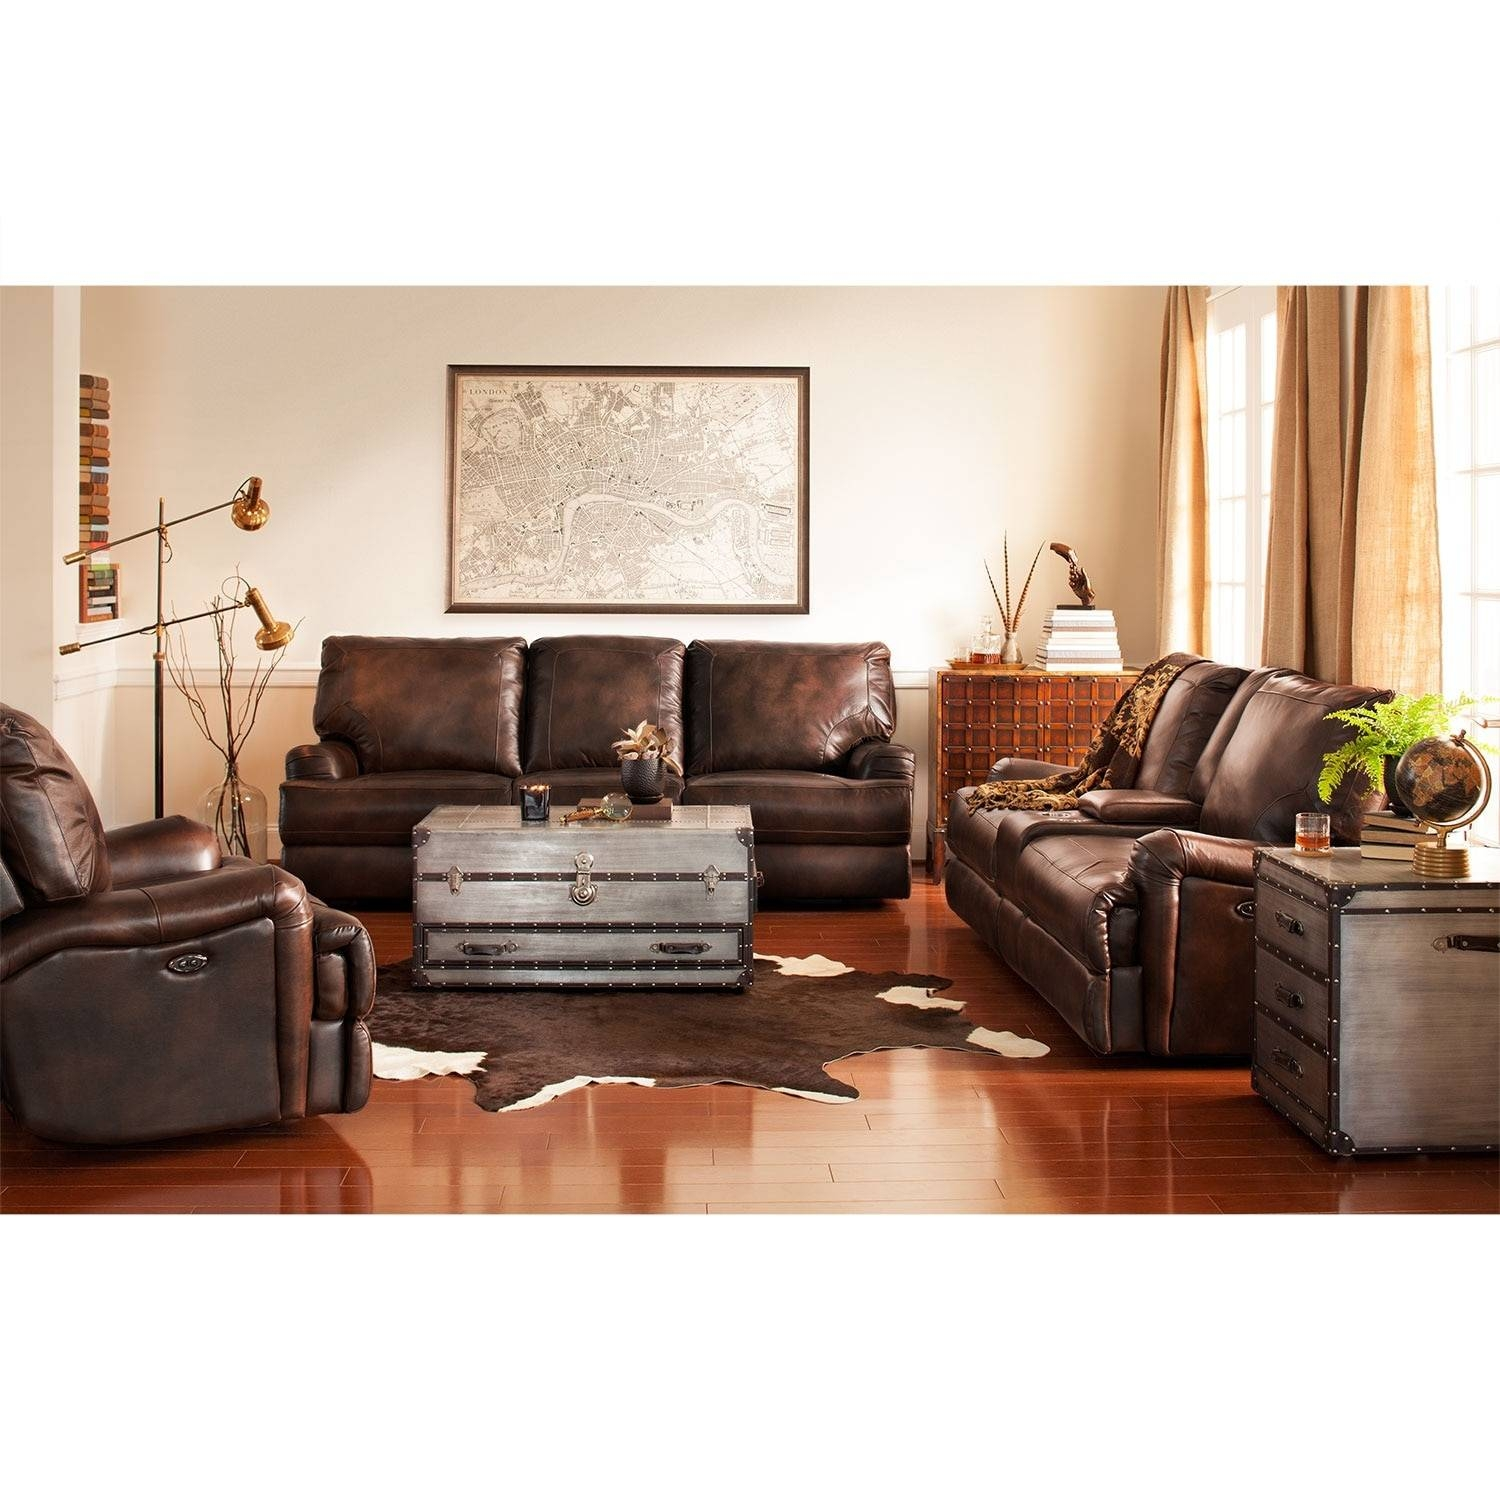 Kingsway Power Reclining Sofa, Loveseat And Recliner Set - Brown within Sofa Loveseat and Chairs (Image 12 of 30)